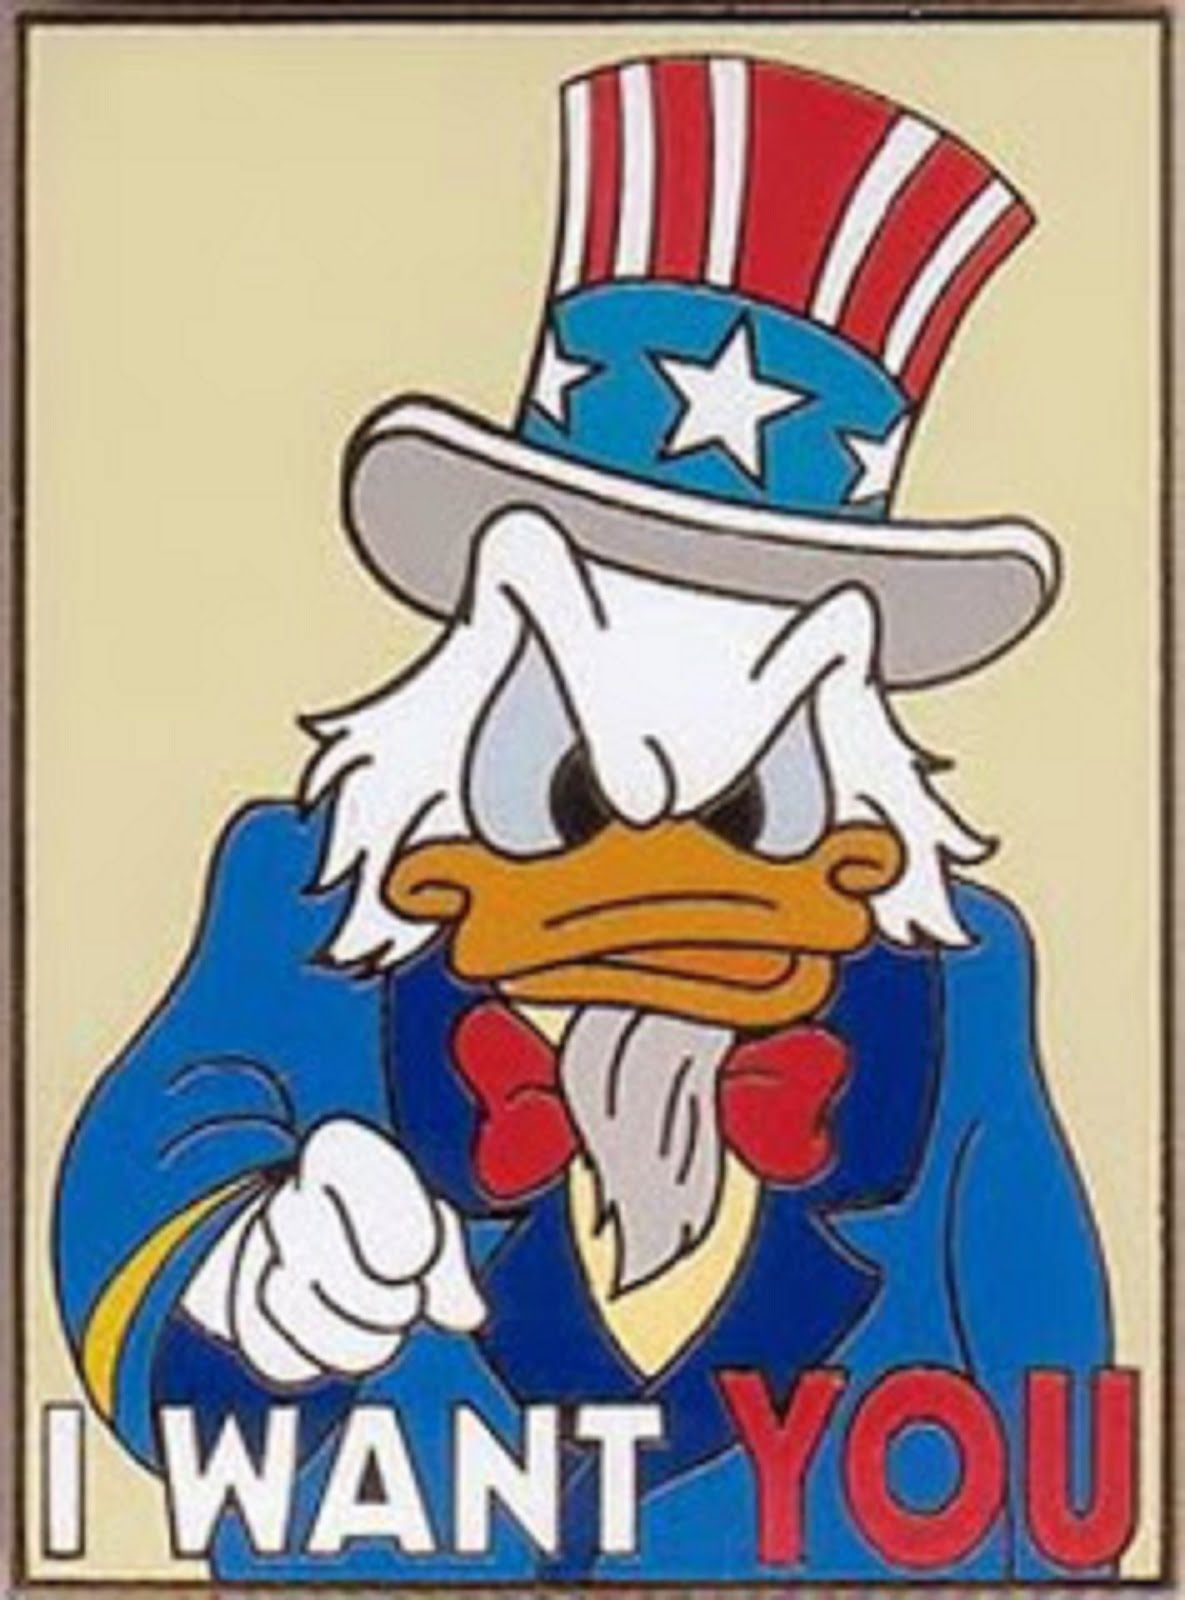 UNCA DONALD WANTS YOU